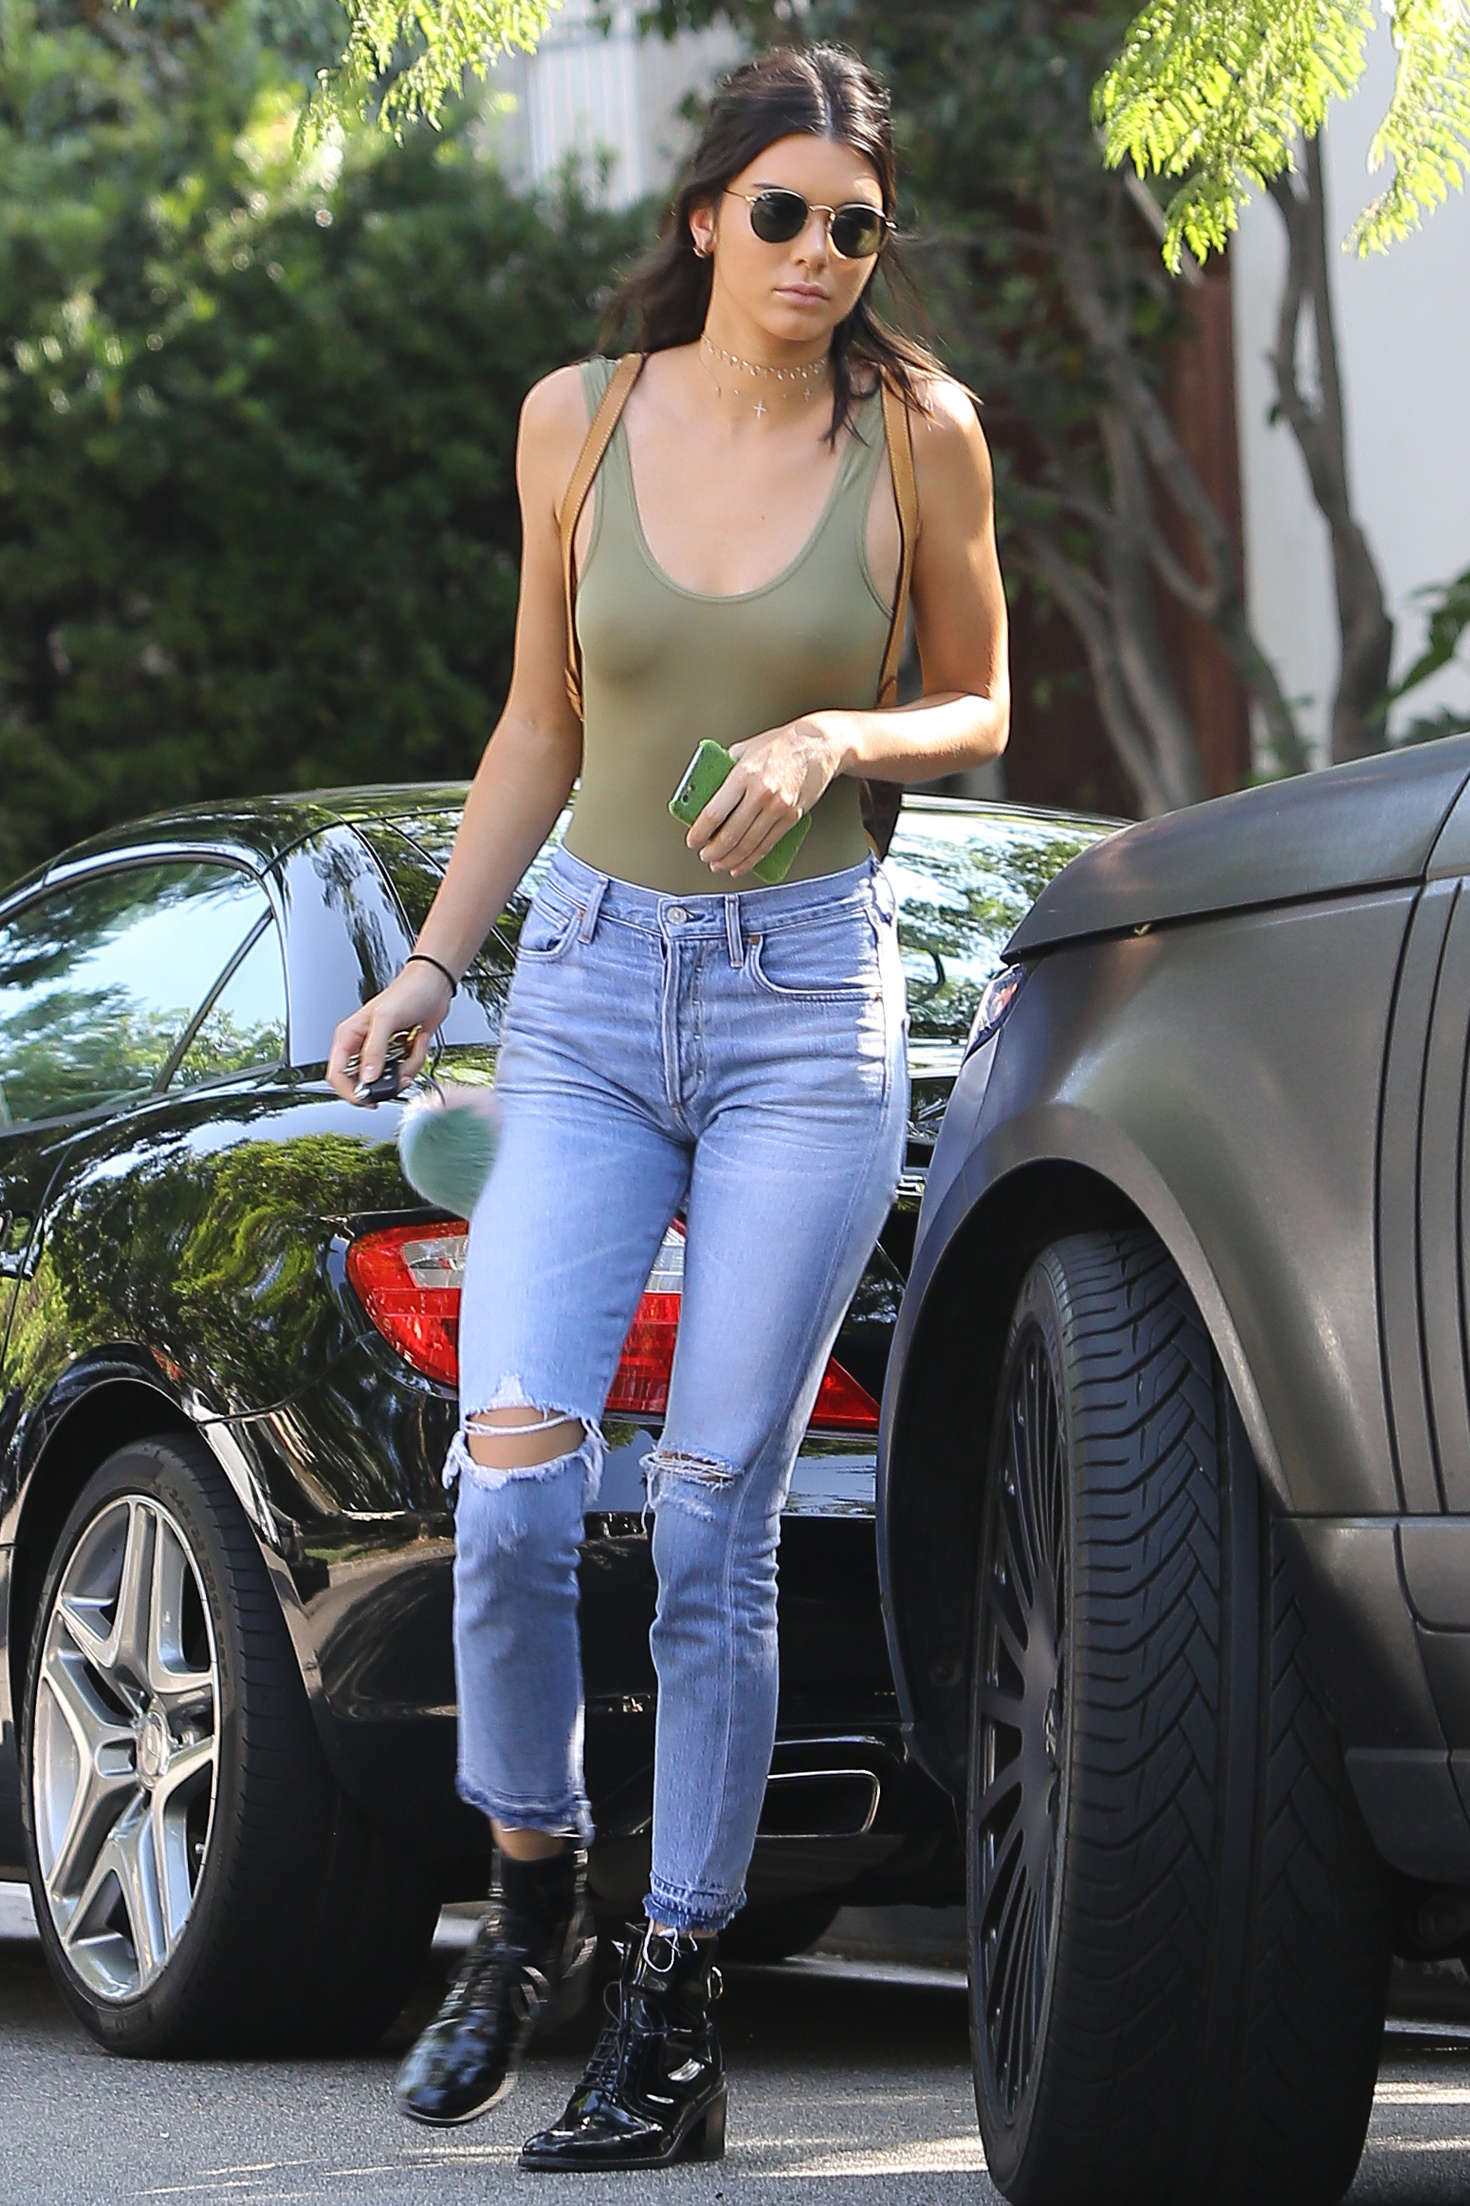 Kendall Jenner In Jeans 11 Gotceleb